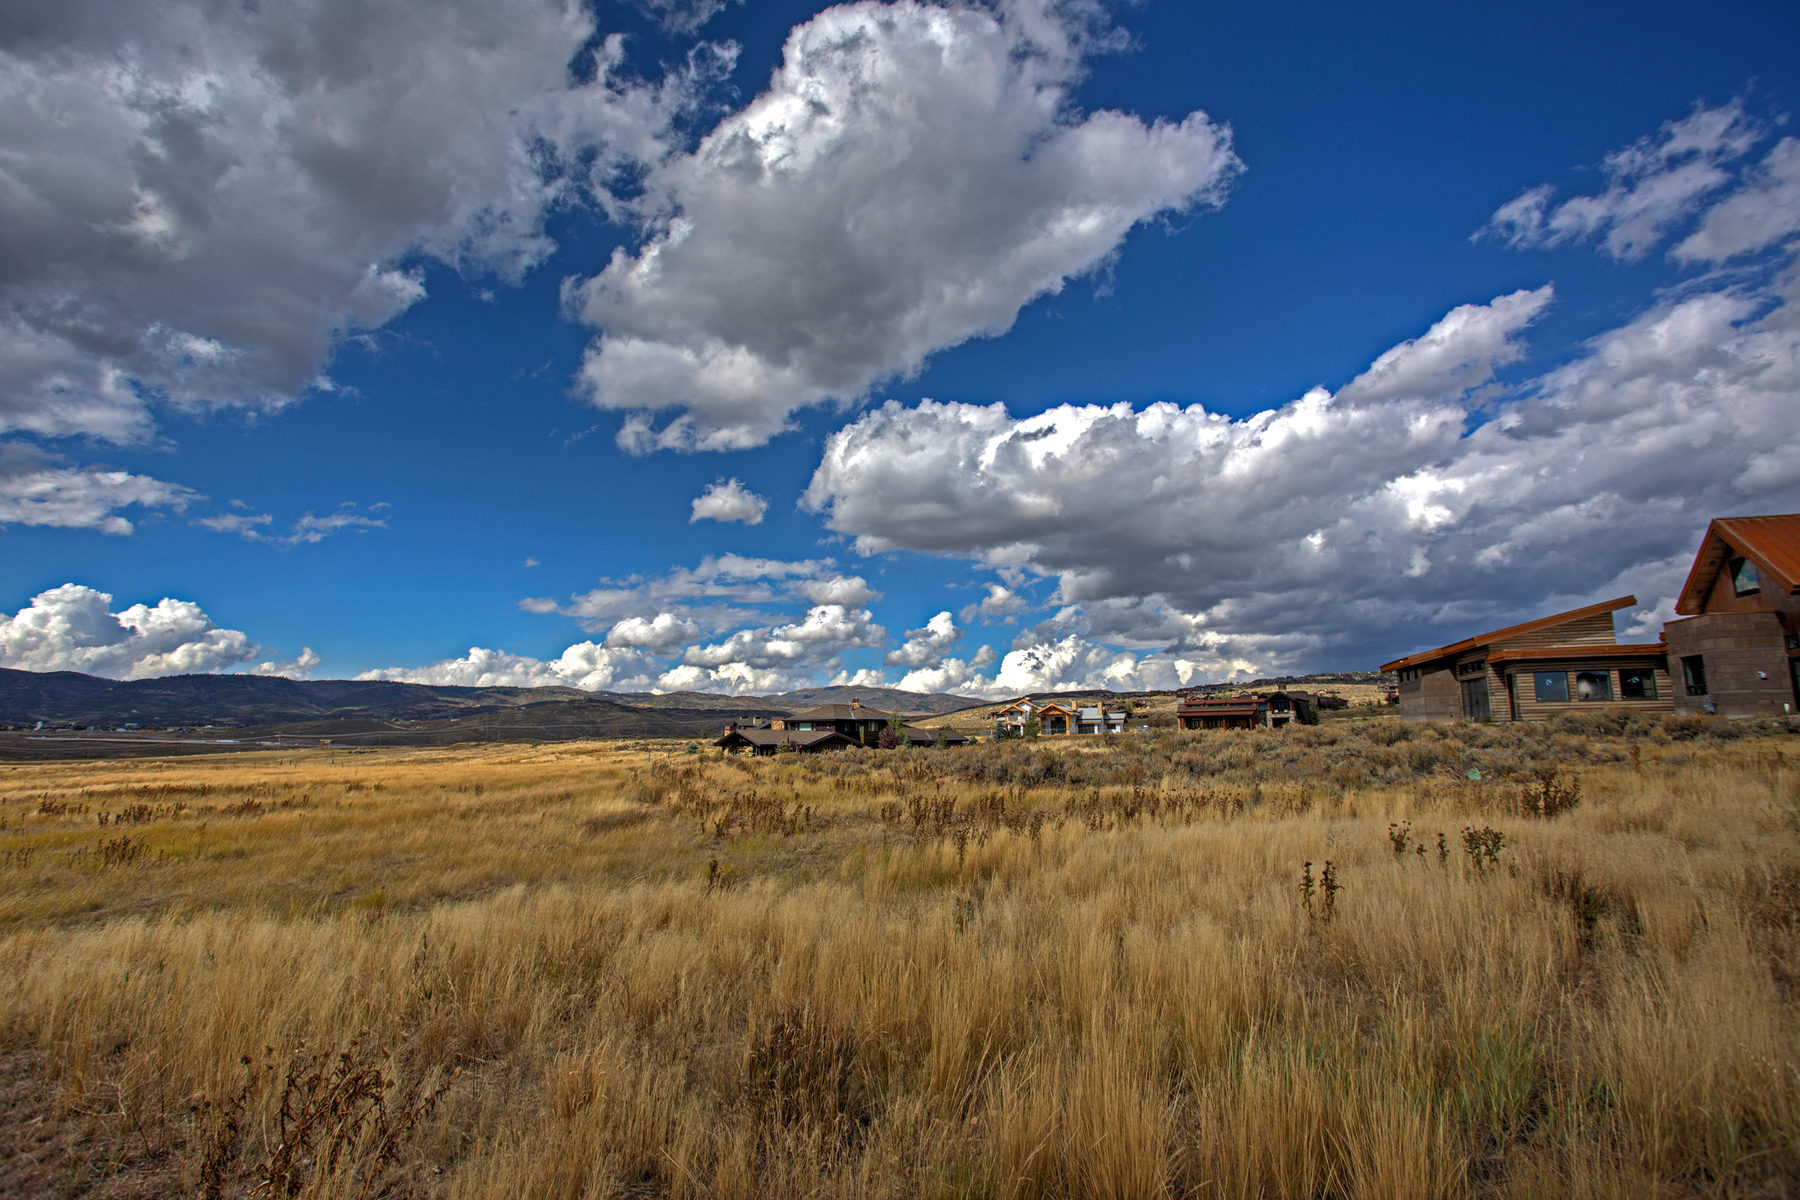 Land for Sale at Desirable Neighborhood Lot with Views 2343 Merrimak Ln Park City, Utah 84098 United States